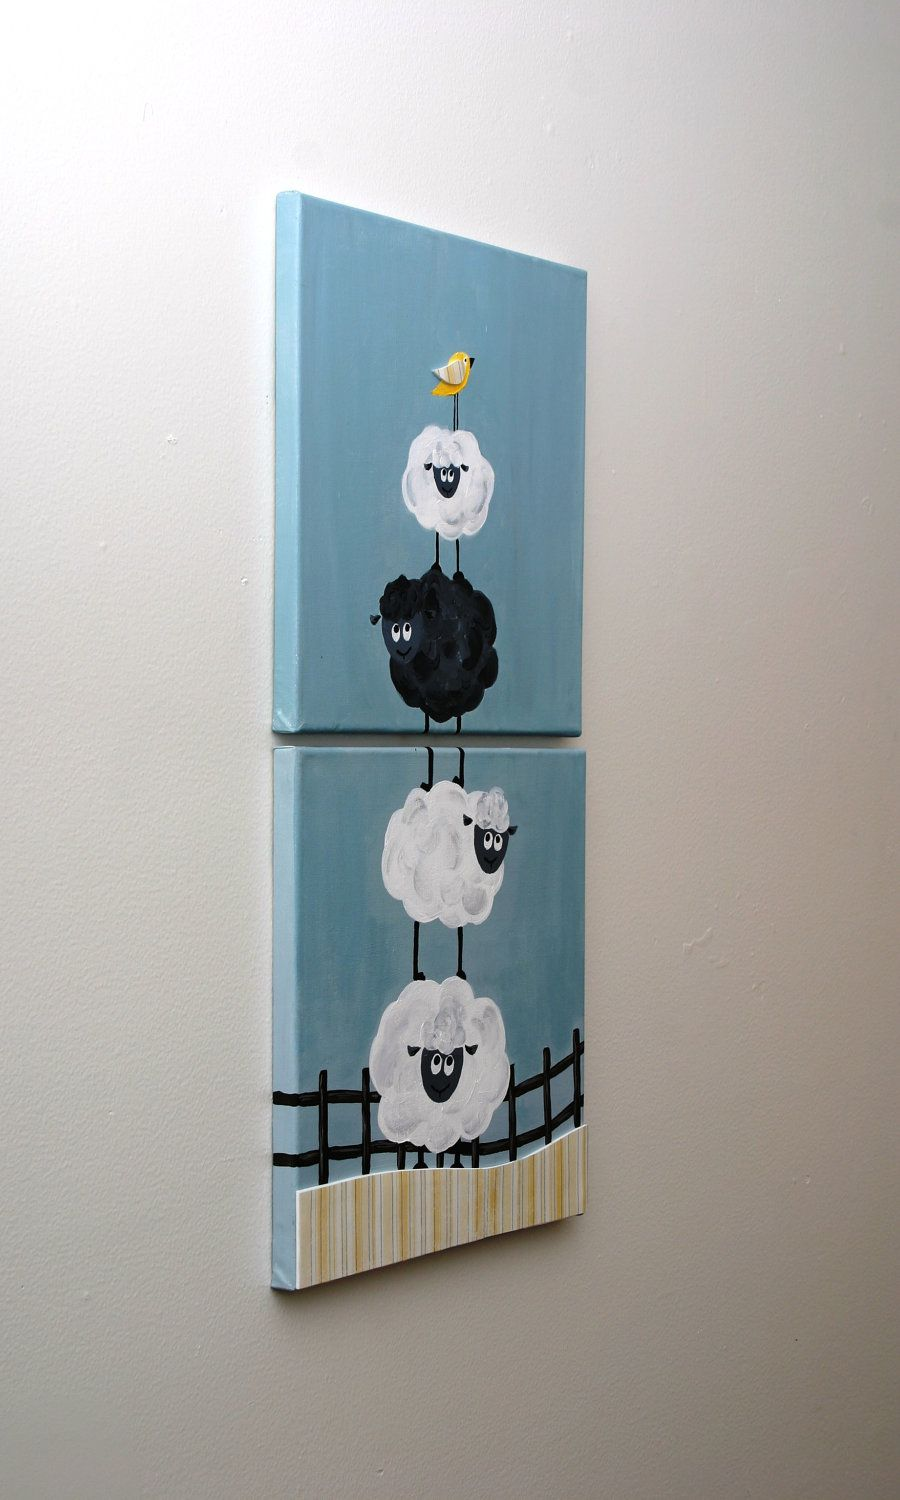 Acrylic Painting Black Sheep Two 12x12 Canvas Art Set